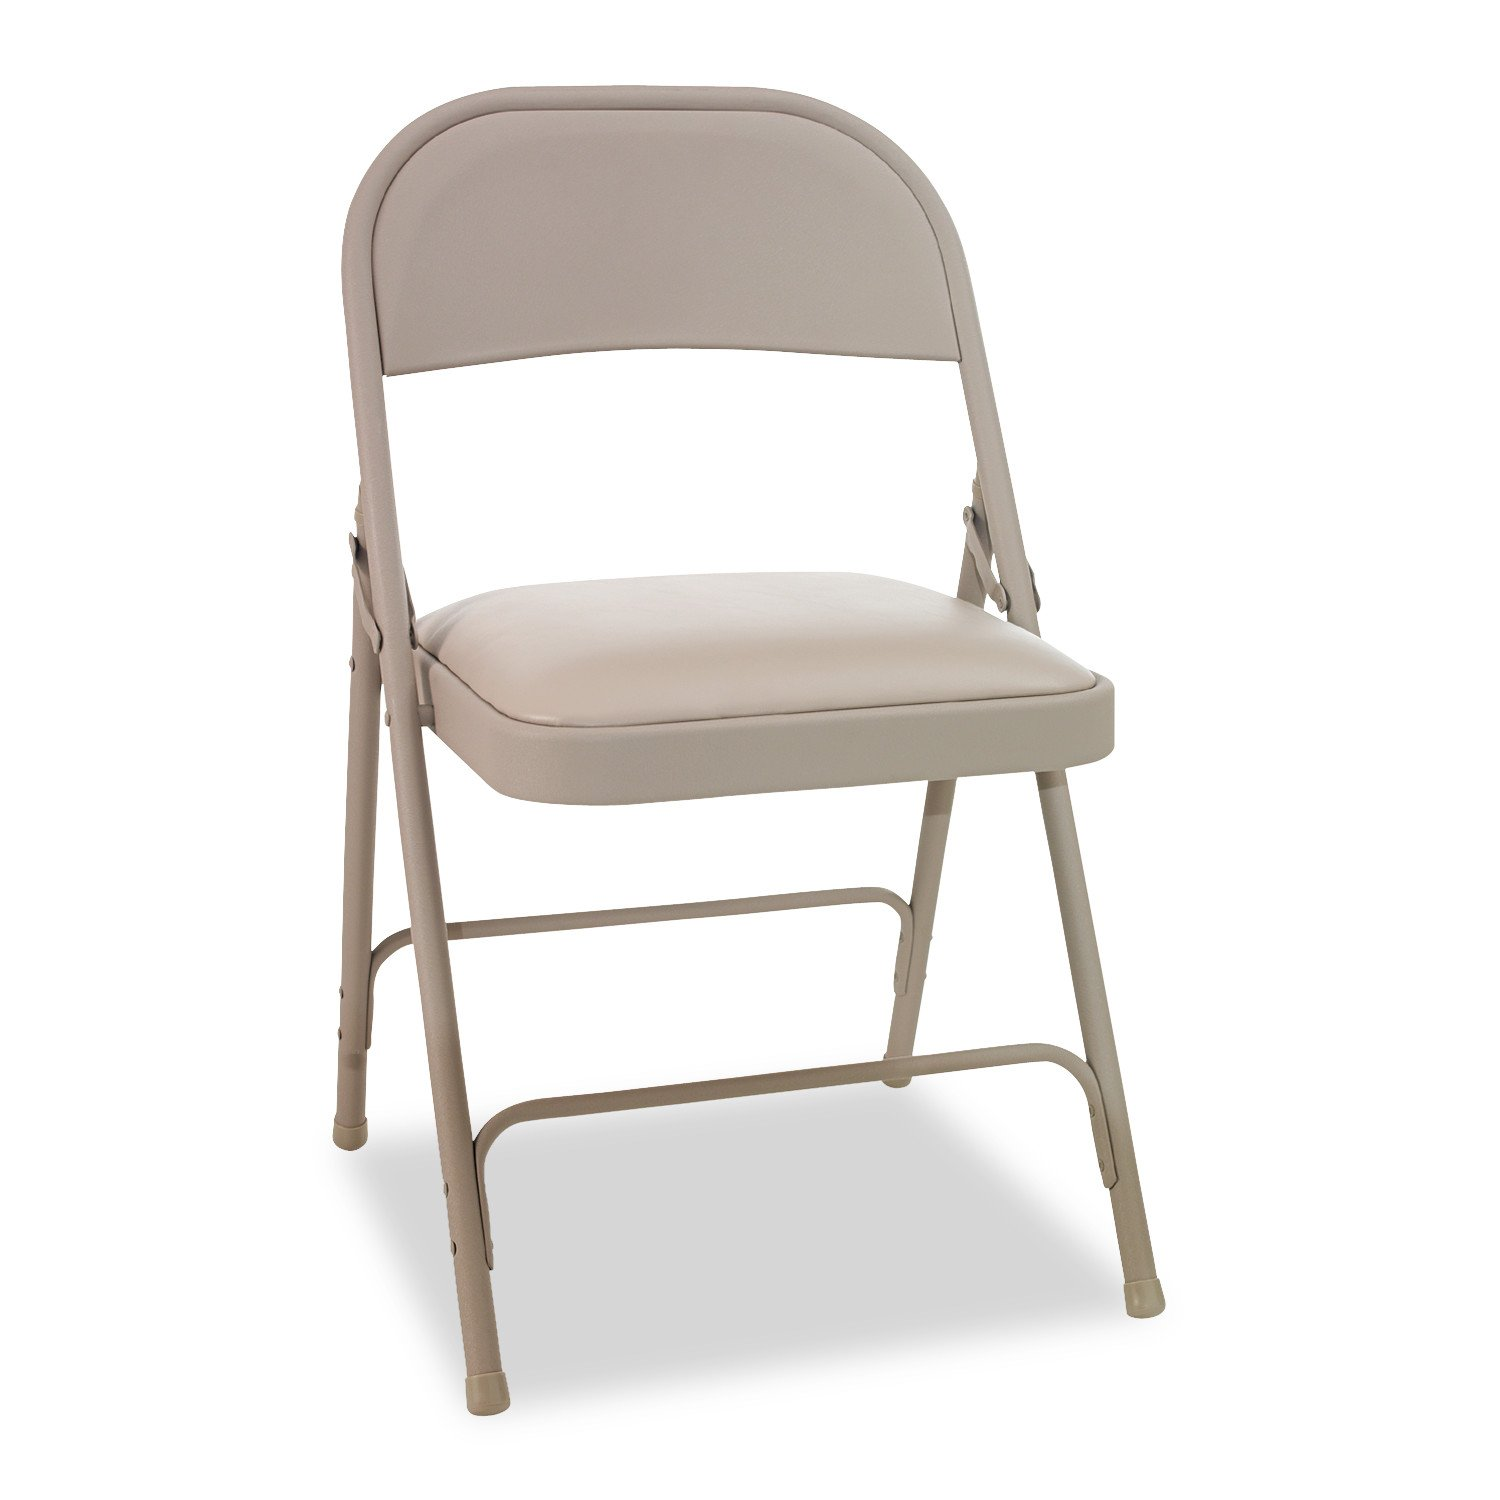 Pleasing Alera Ale Steel Folding Chair With Two Brace Support Padded Seat Tan Case Of 4 Theyellowbook Wood Chair Design Ideas Theyellowbookinfo